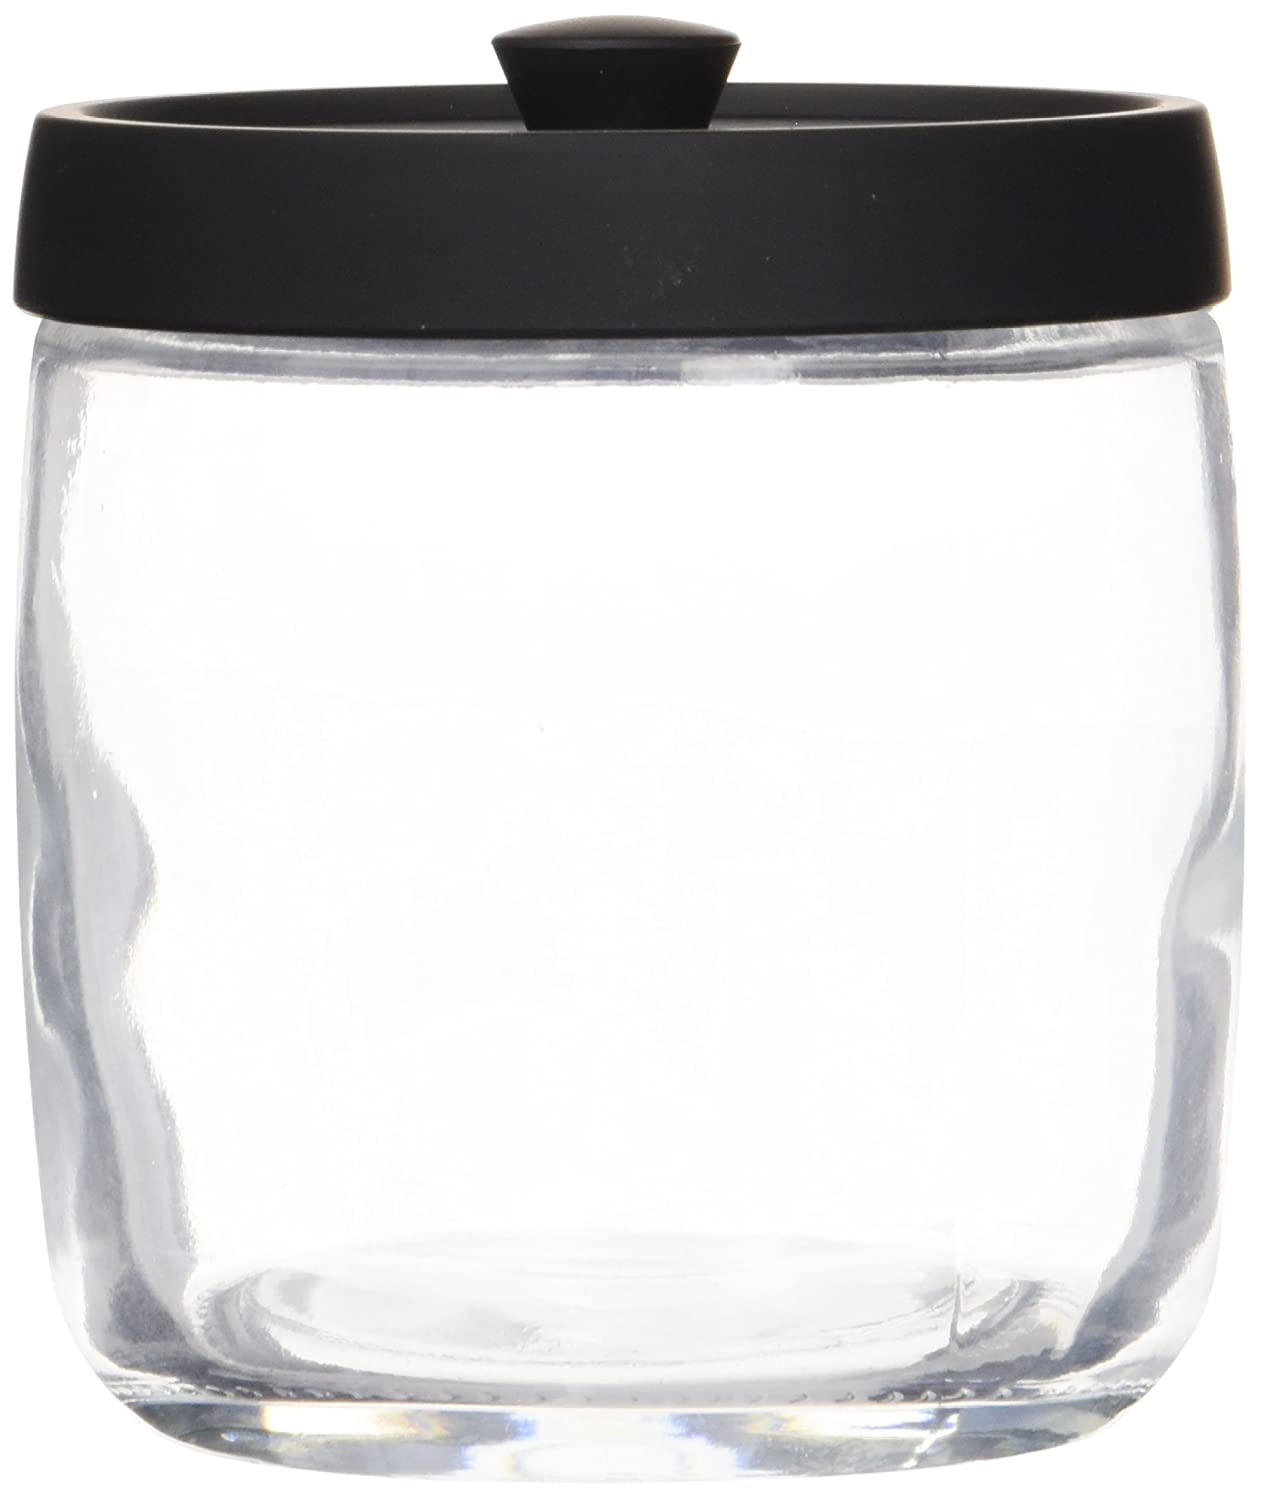 InterDesign Ariana Bathroom Canister Cosmetic Image 1